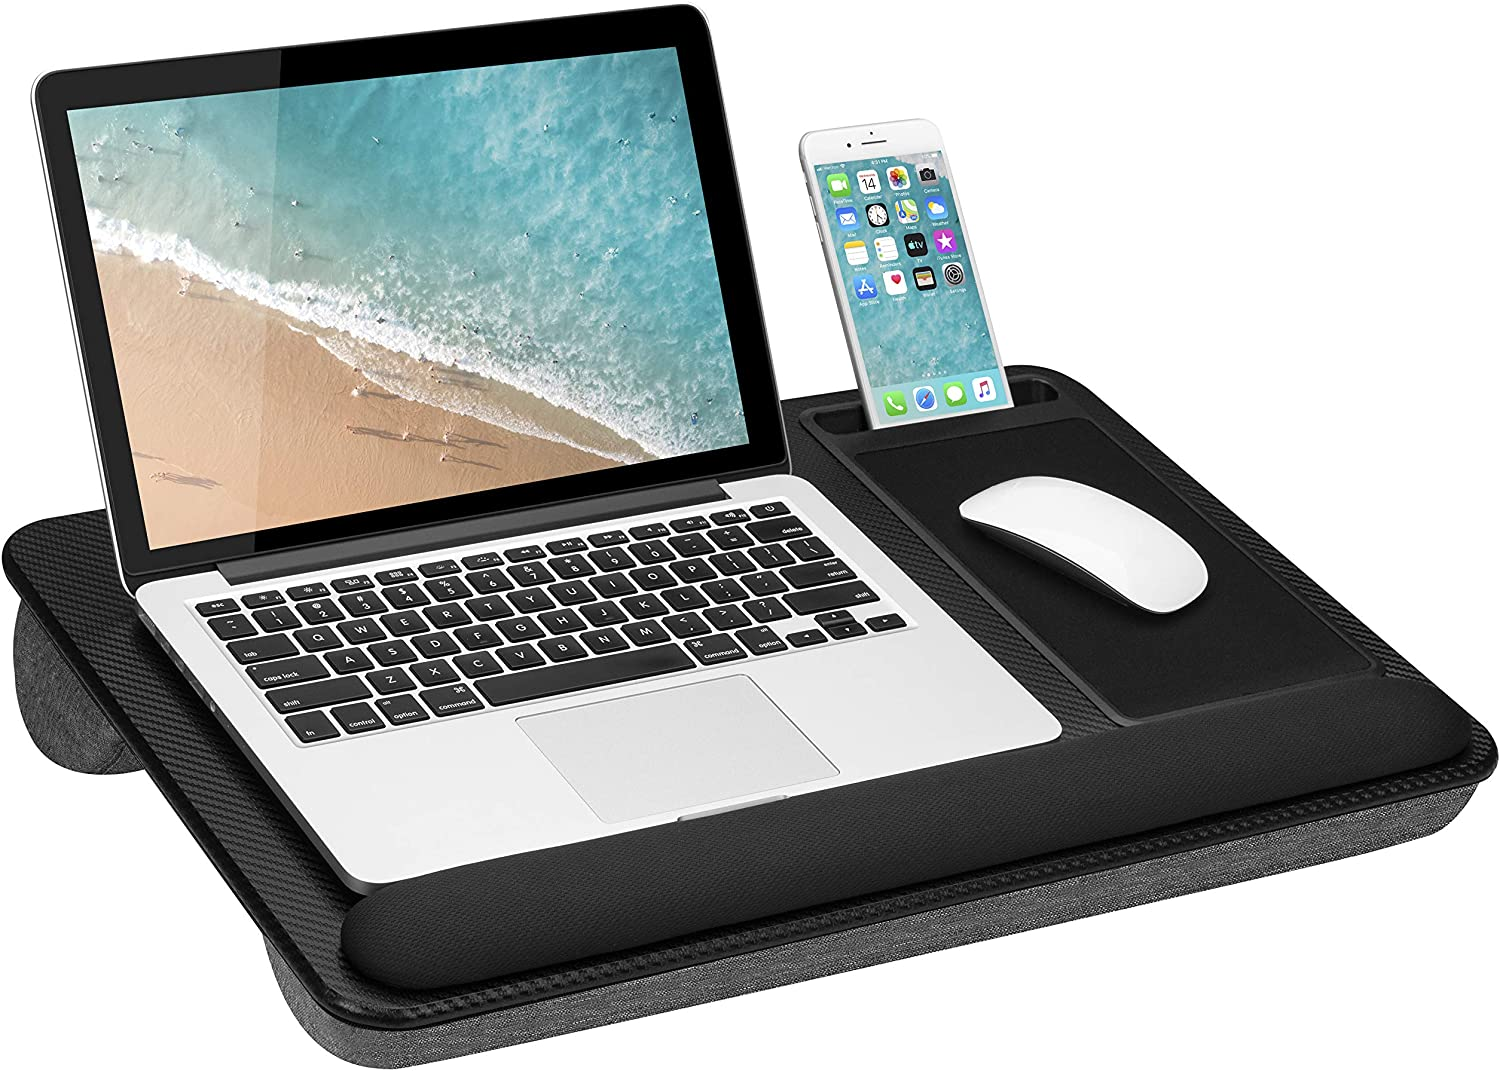 LapGear Home Office Pro Lap Desk with Wrist Rest, Mouse Pad, and Phone Holder - Black Carbon - Fits Up to 15.6 Inch Laptops - Style No. 91598